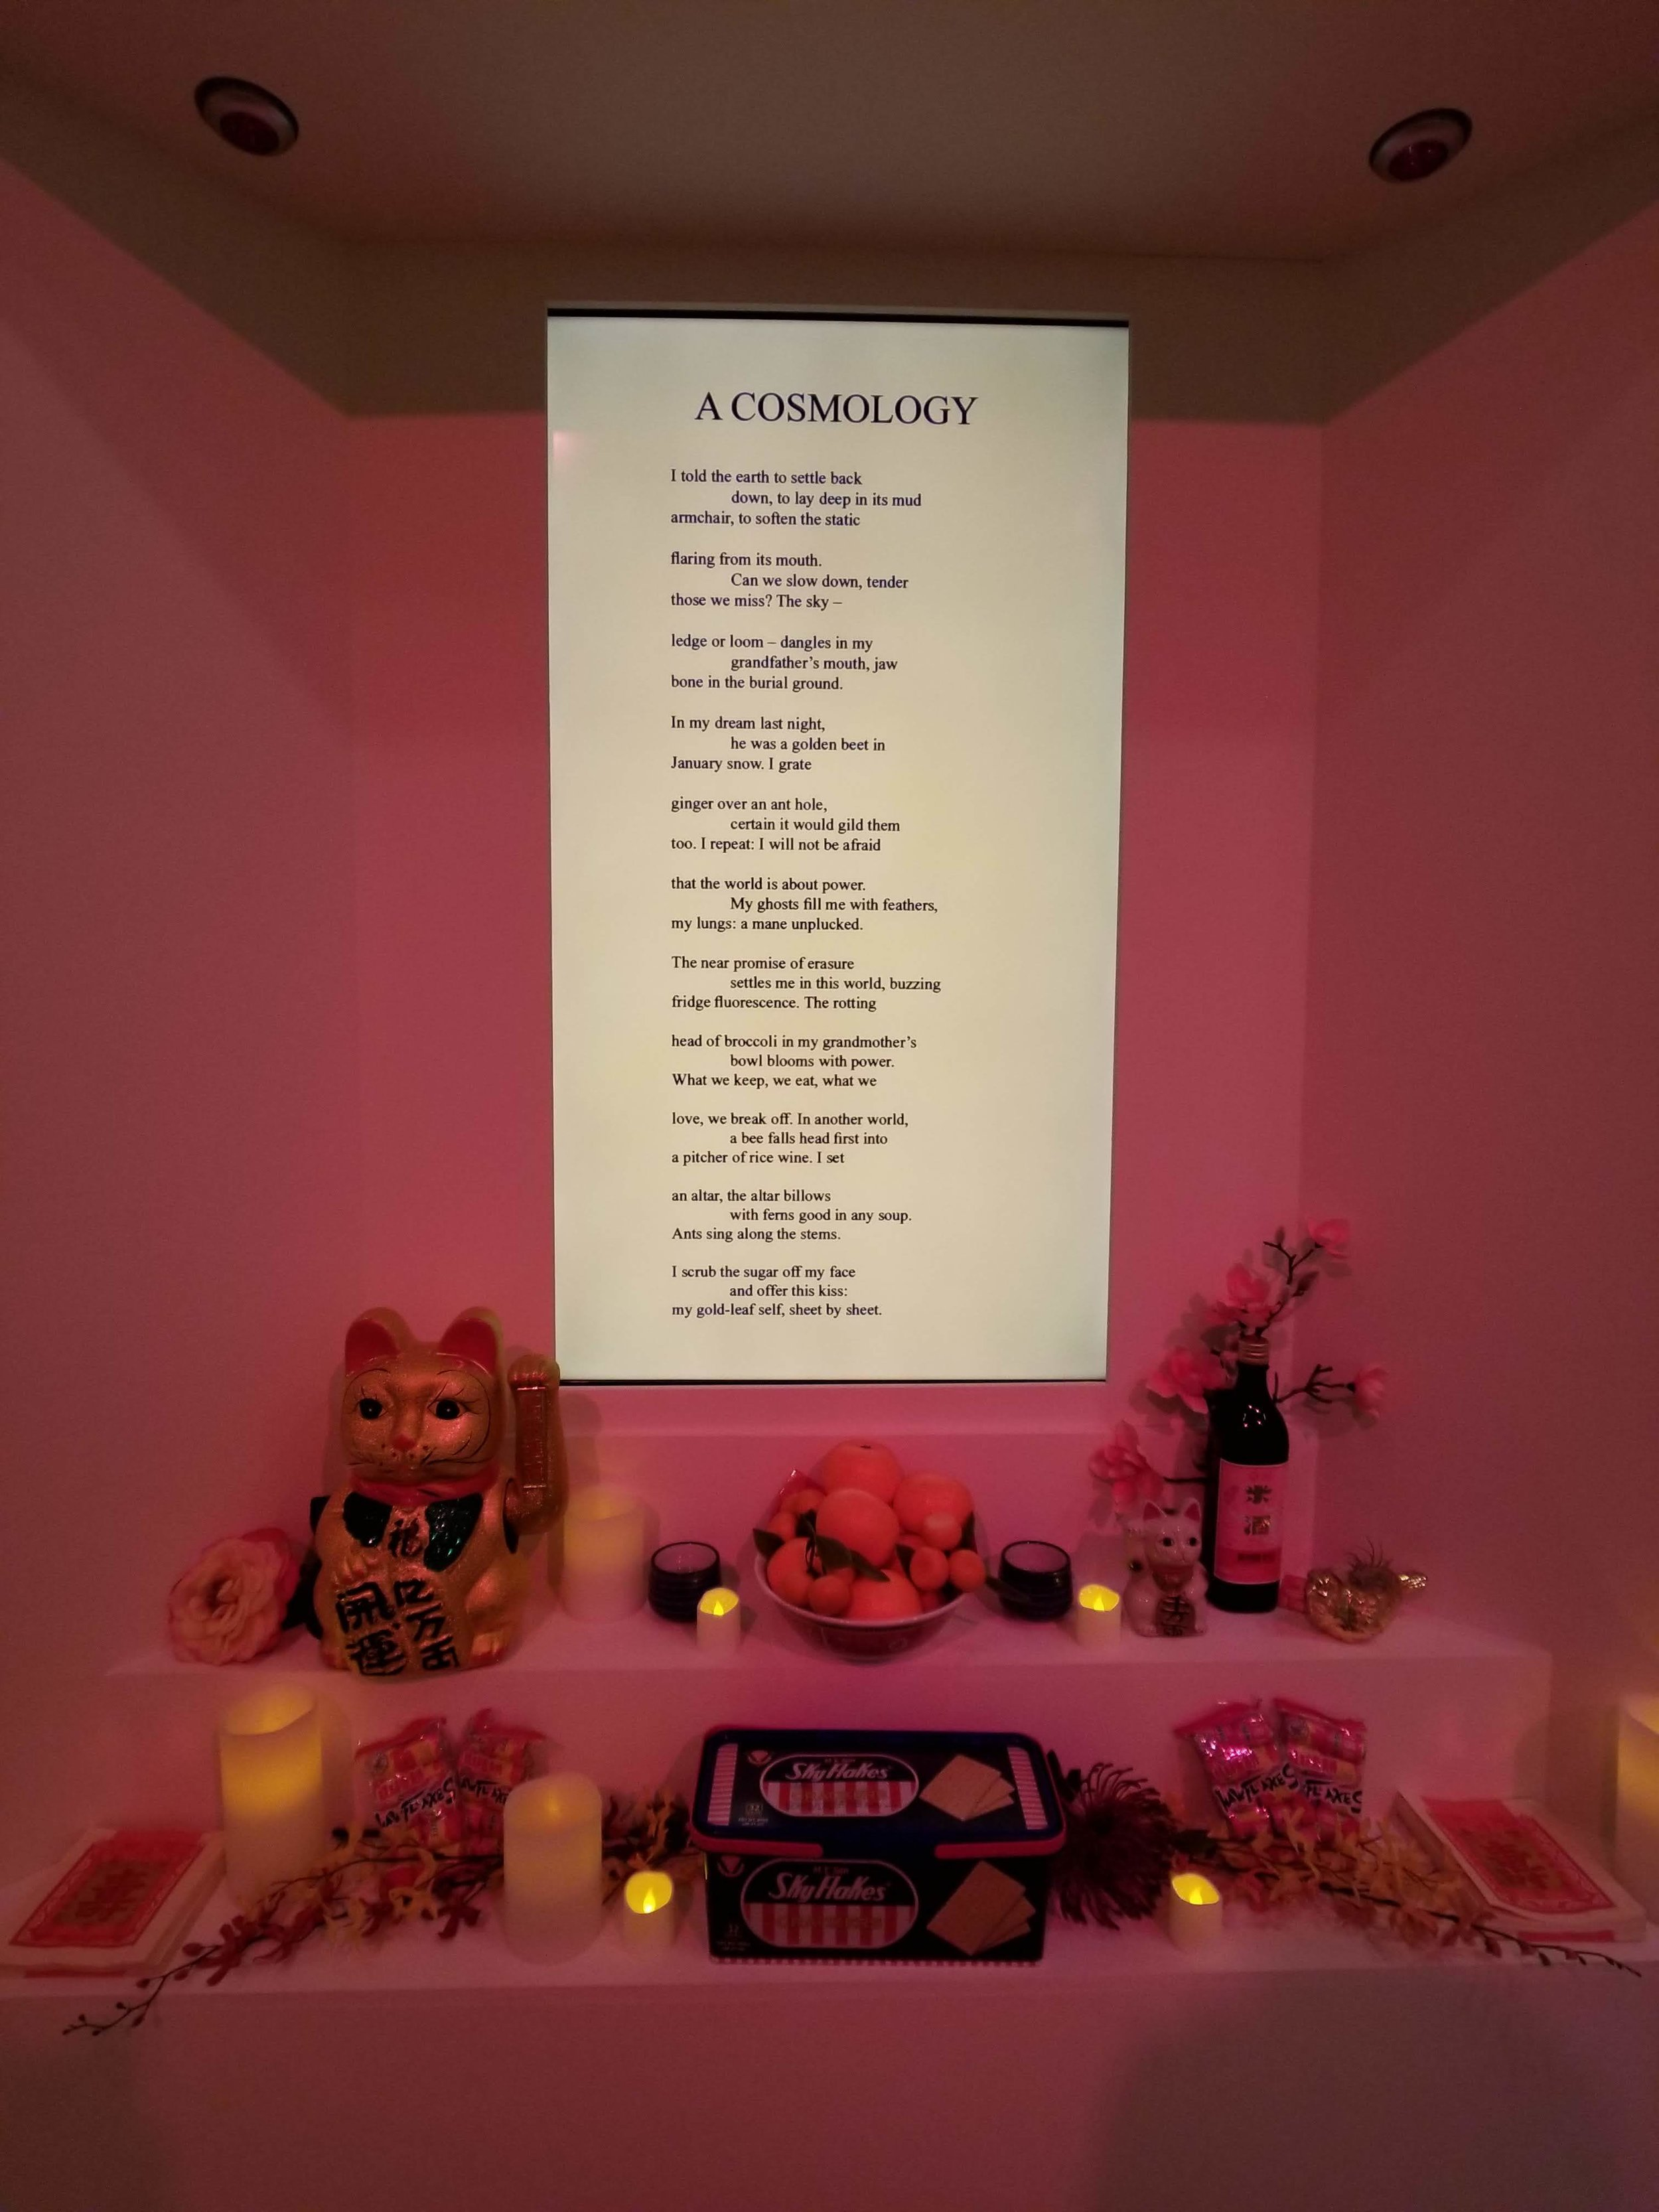 """""""In my dream last night, he was a golden beet in January snow."""" My favorite line from the poem """"A Cosmology"""" by Jane Wong. An altar frames the screen on which different poems would rotate."""